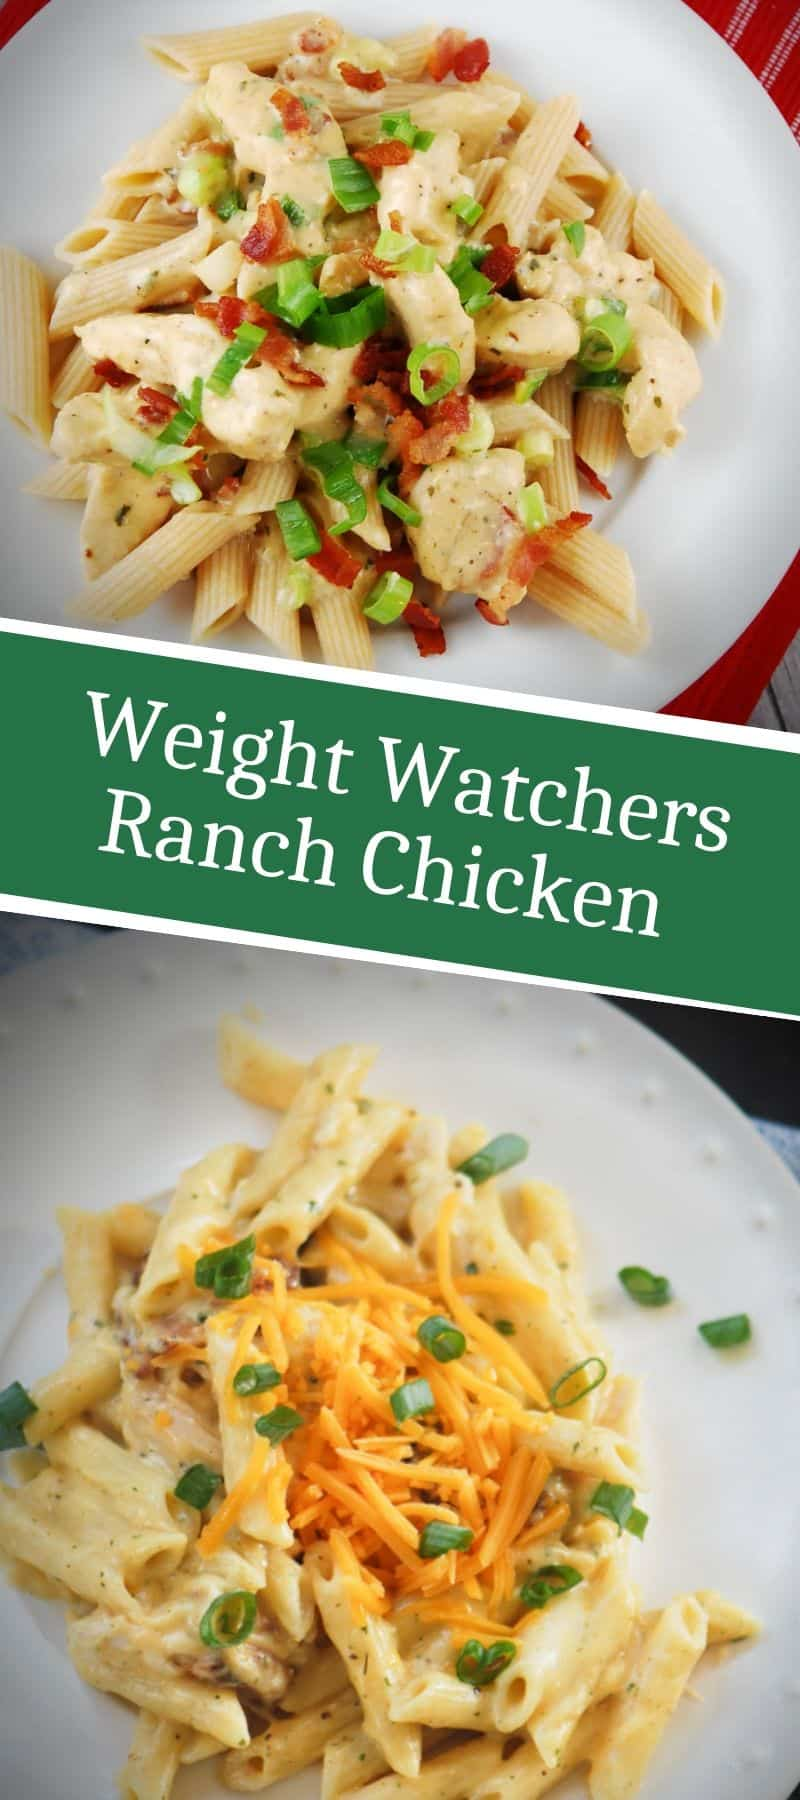 Weight Watchers Ranch Chicken Recipe 3